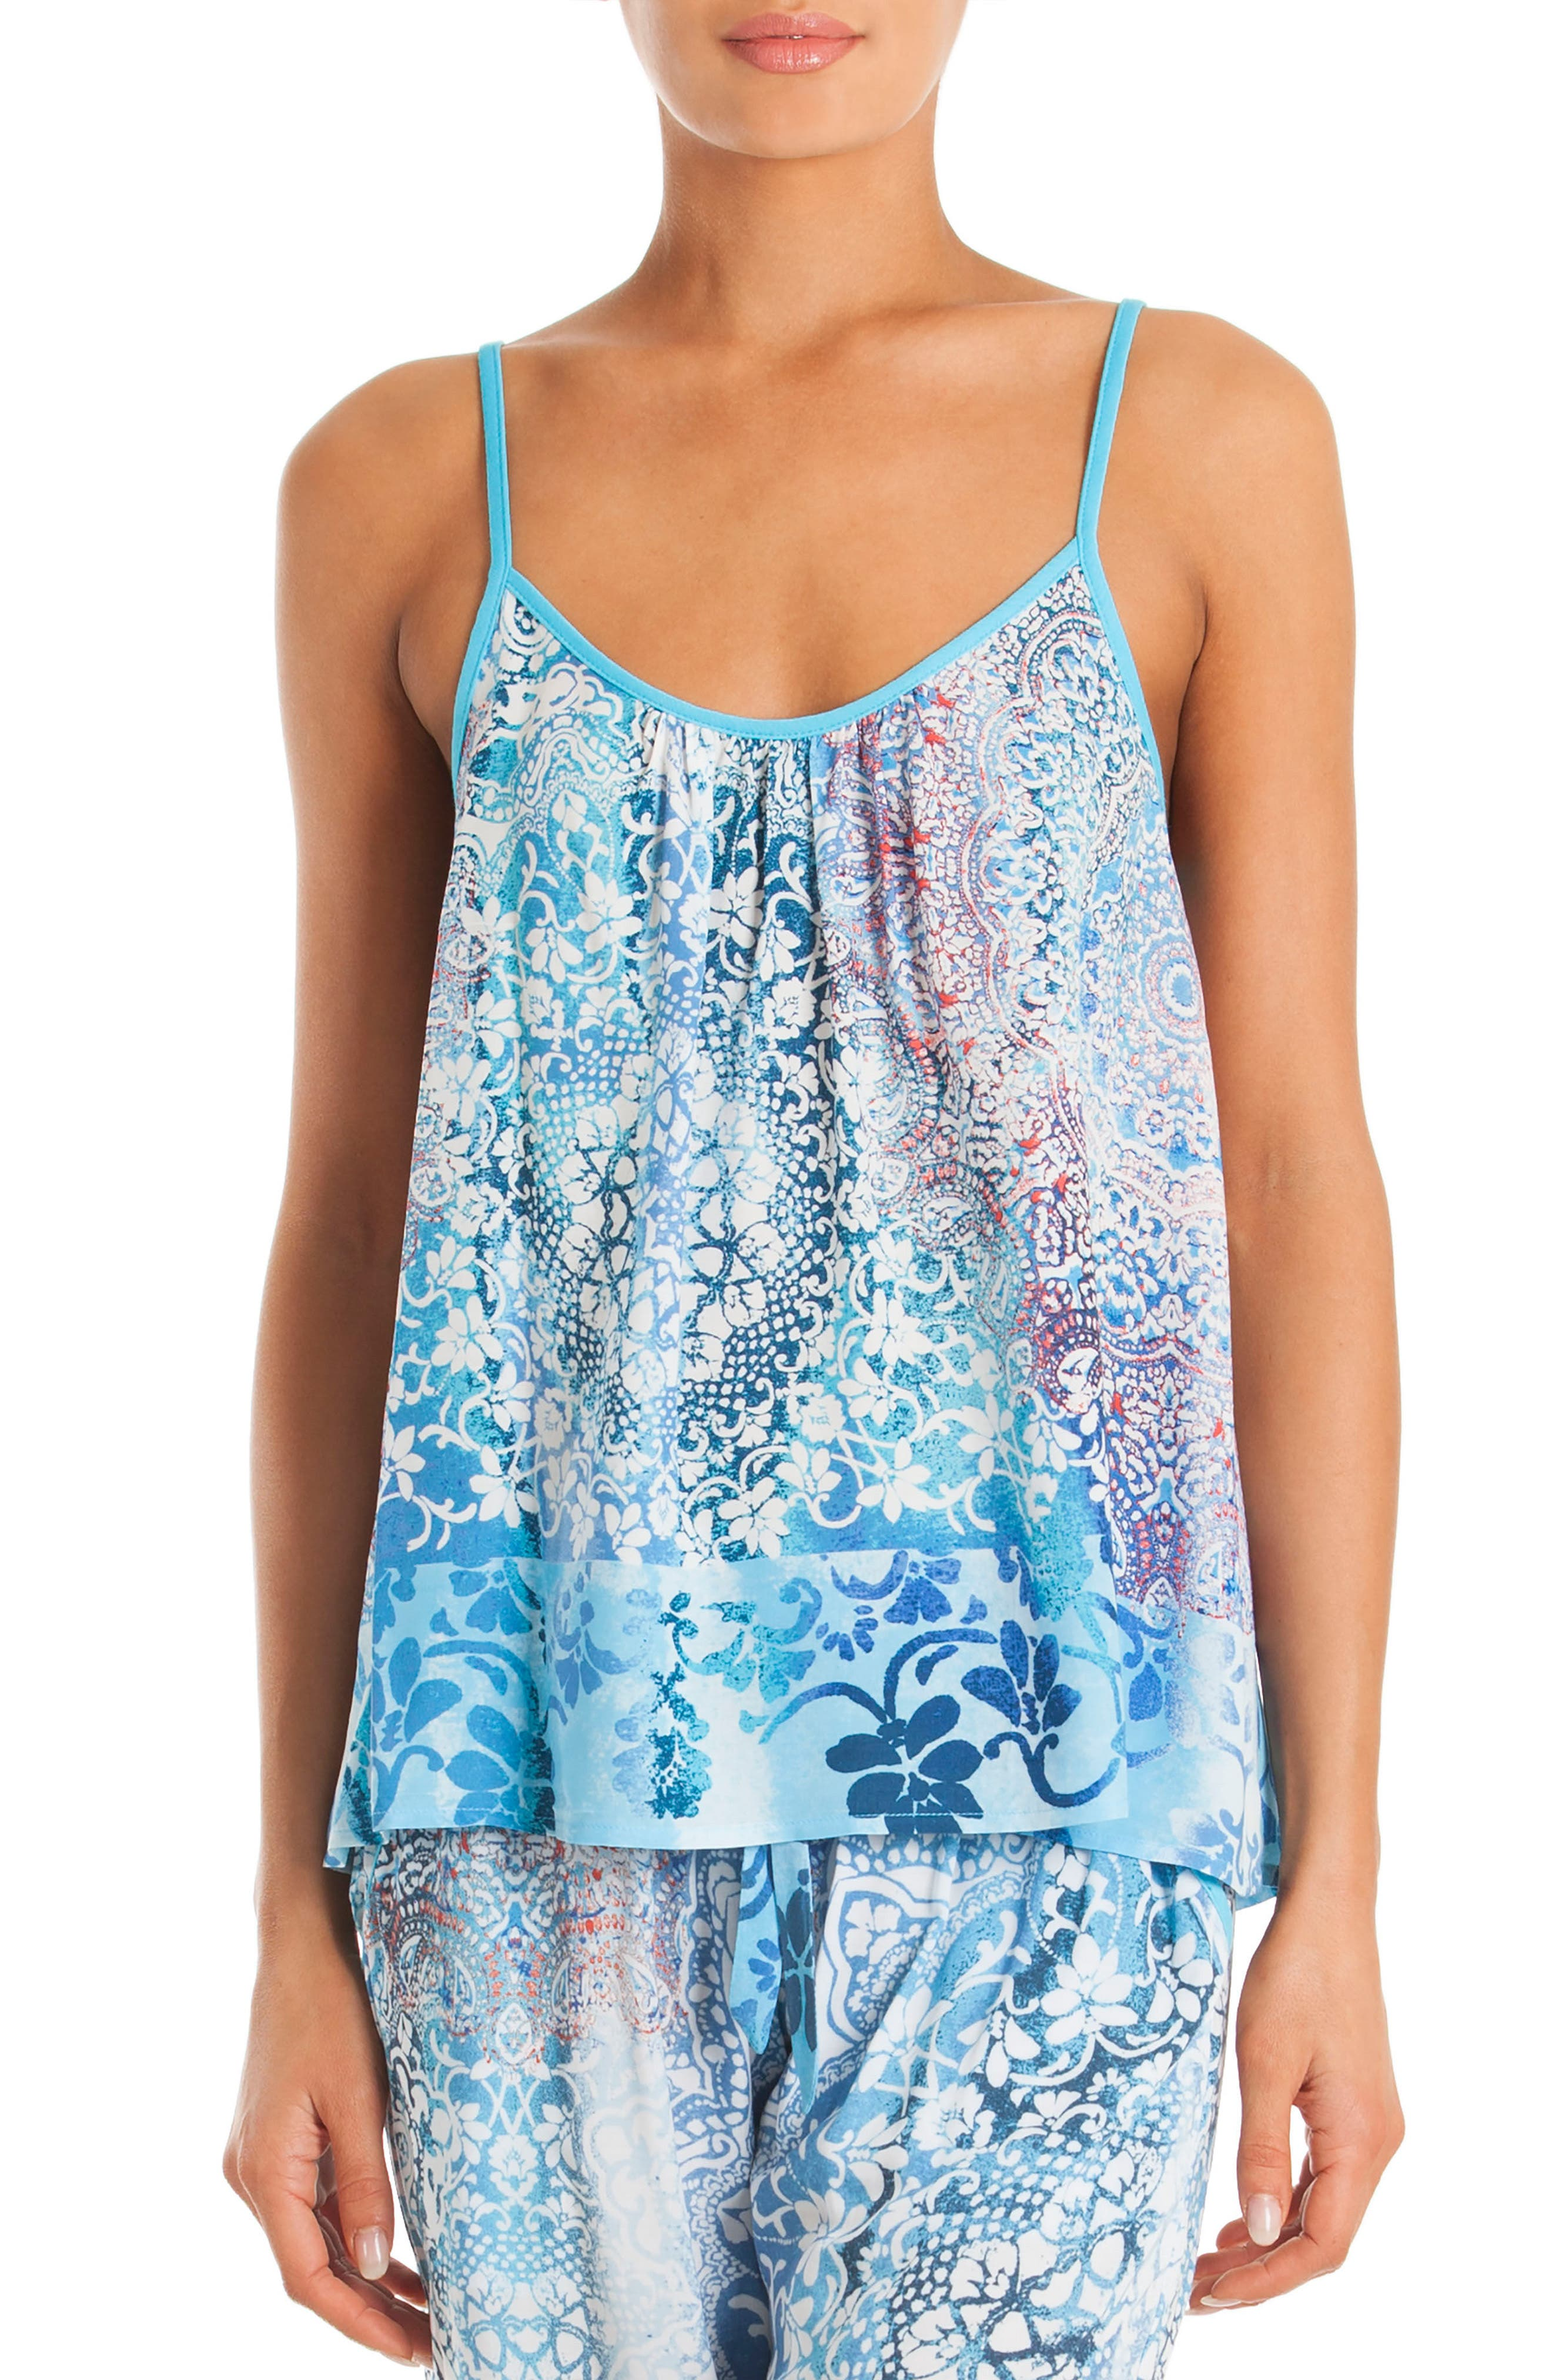 In Bloom by Jonquil Lounge Camisole